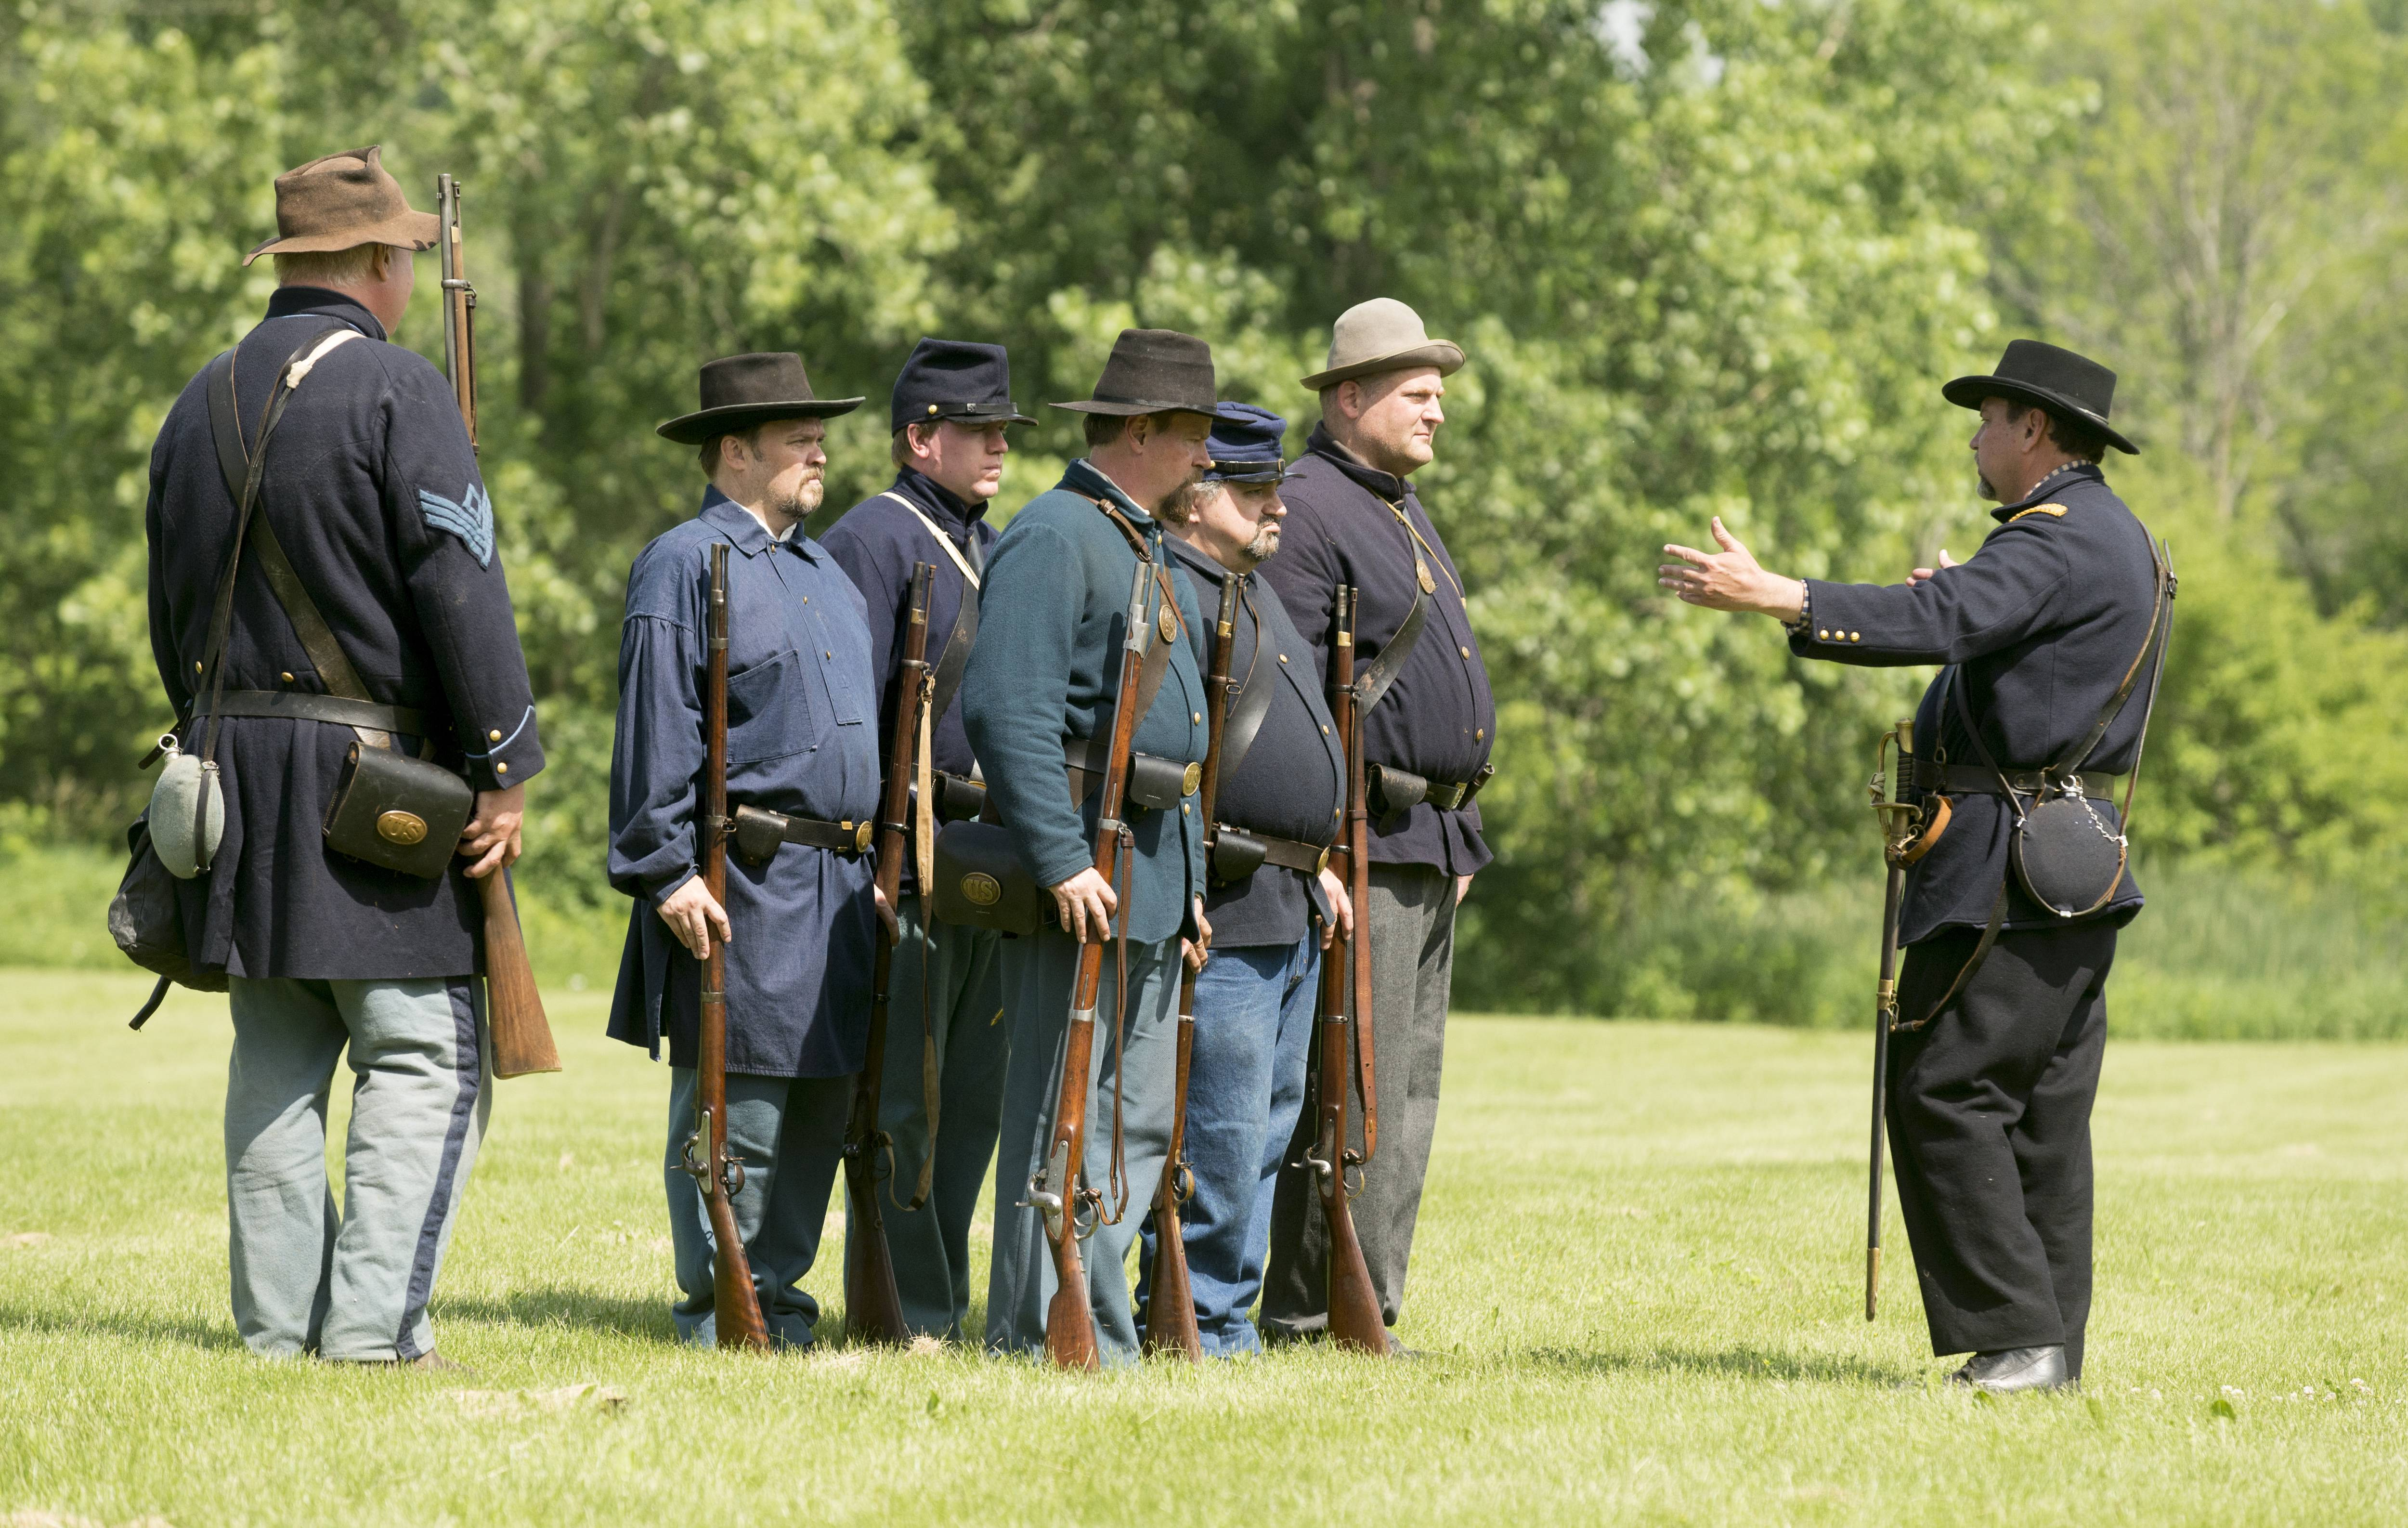 The 10th Illinois Volunteer Regiment performs a manual of arms drills Sunday during the second annual Civil War Days at Fischer Farm in Bensenville.